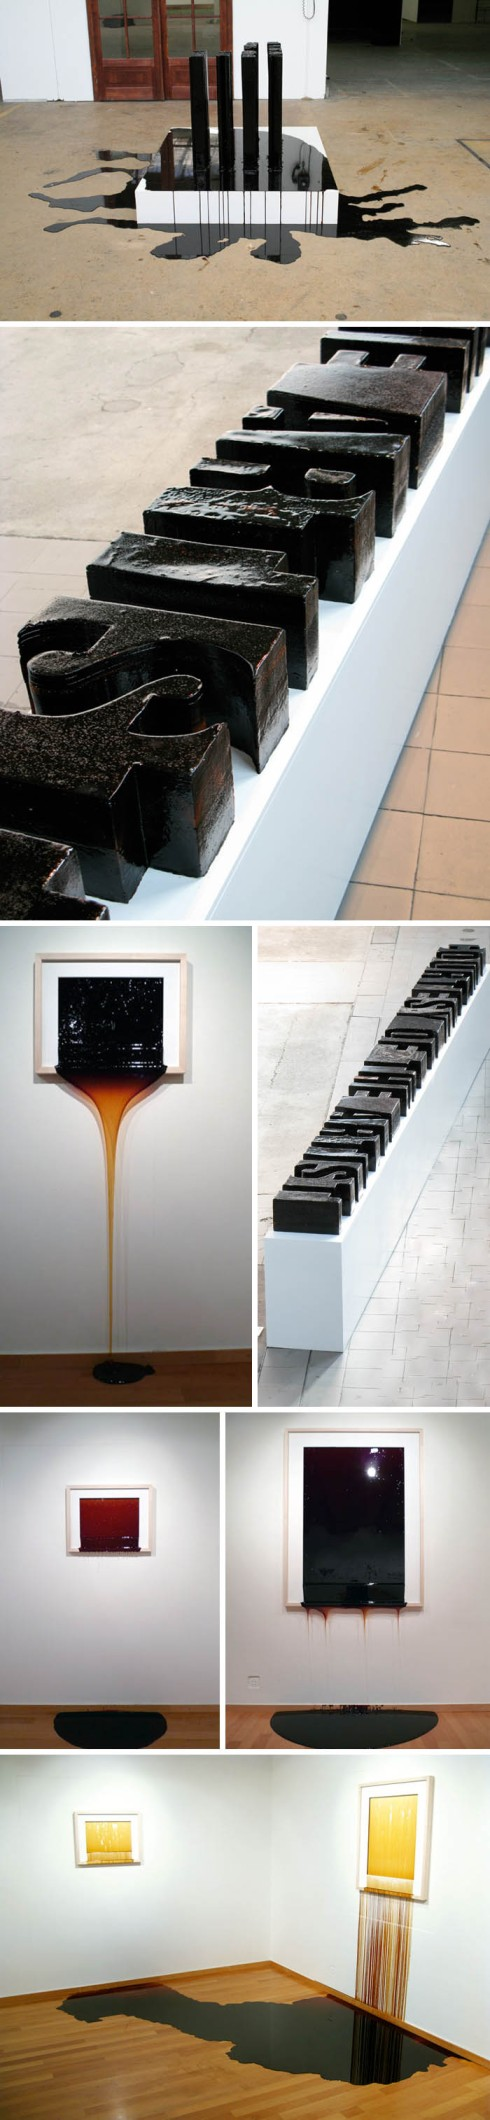 Typography, cool sculptures and artwork made of burnt sugar that melt, Jonas Etter, contemporary Swiss art